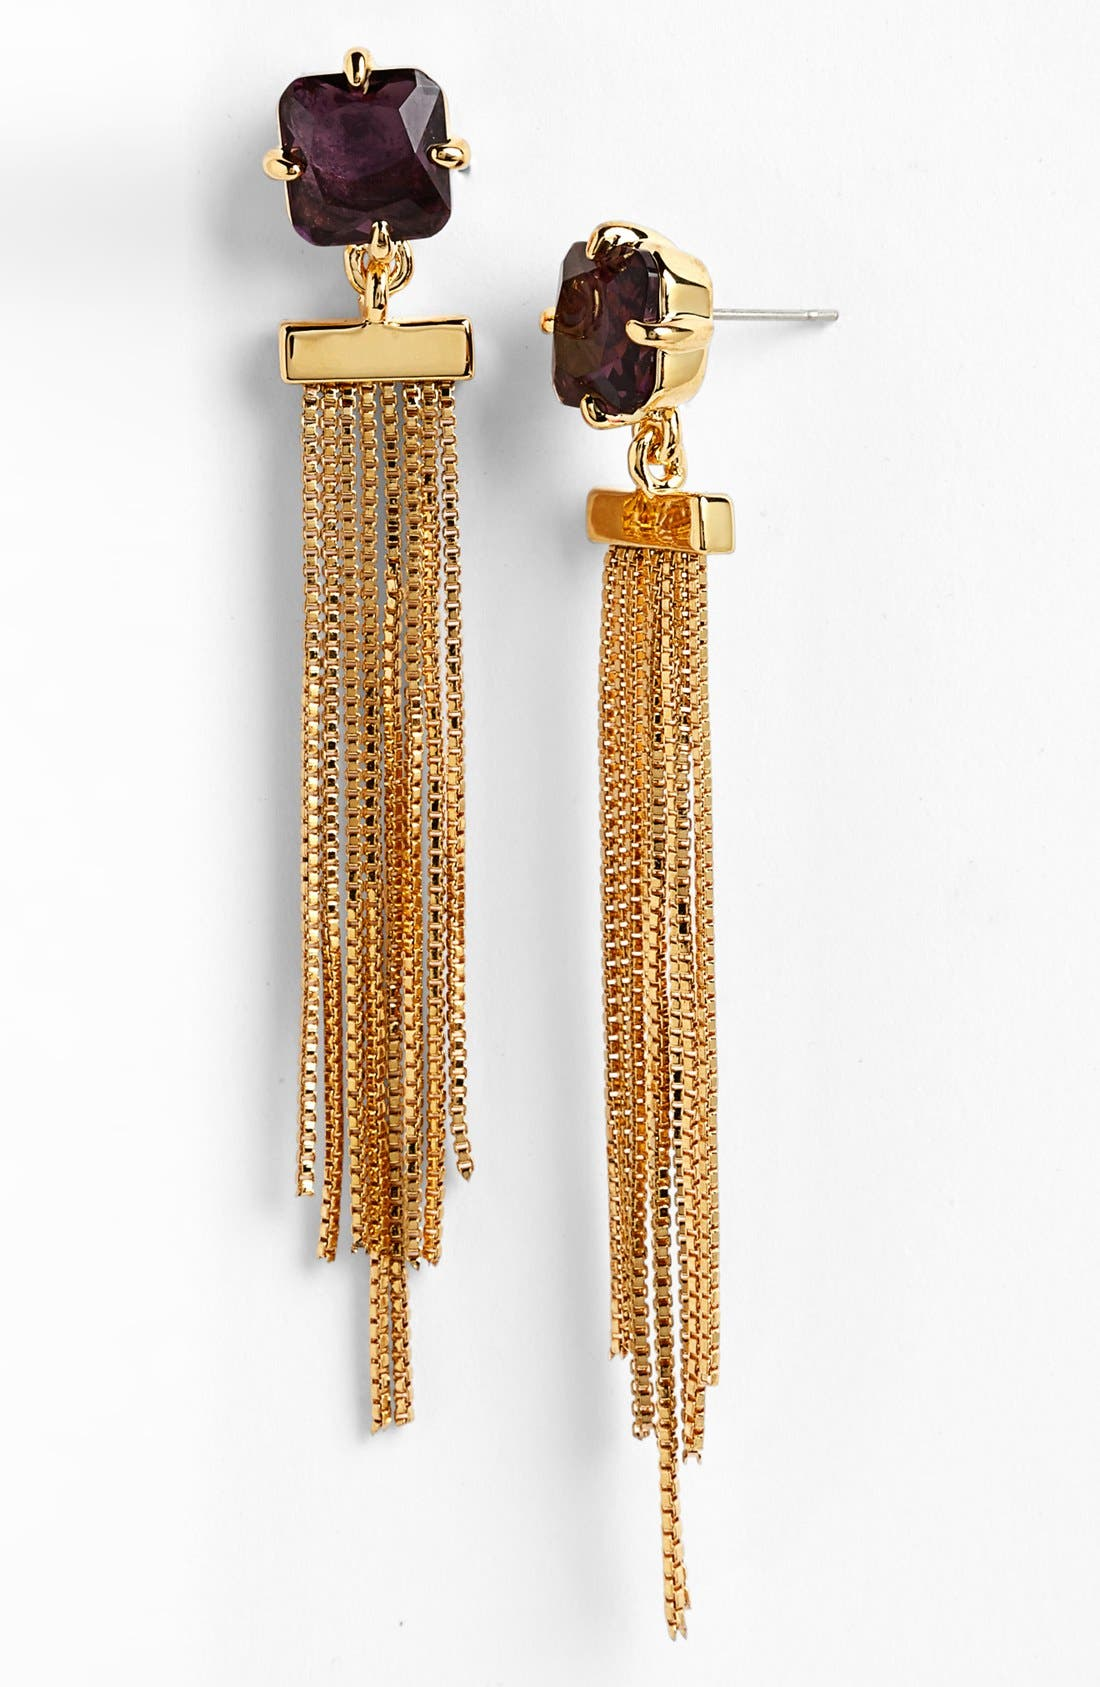 Alternate Image 1 Selected - Vince Camuto 'Jewel Purpose' Chain Fringe Linear Earrings